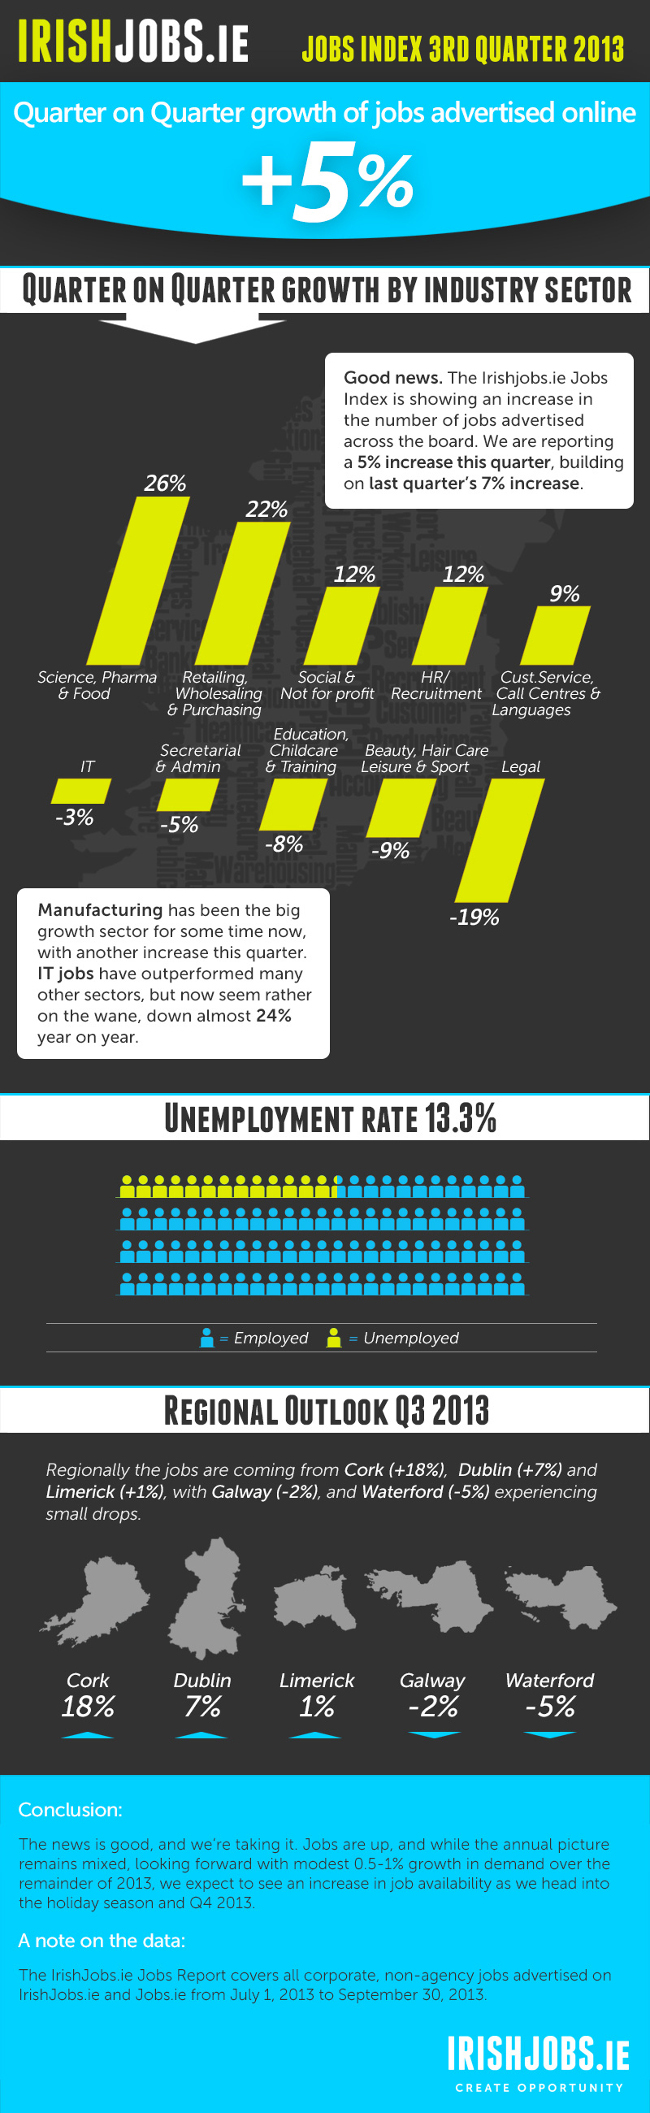 Jobs Index infographic - IrishJobs.ie